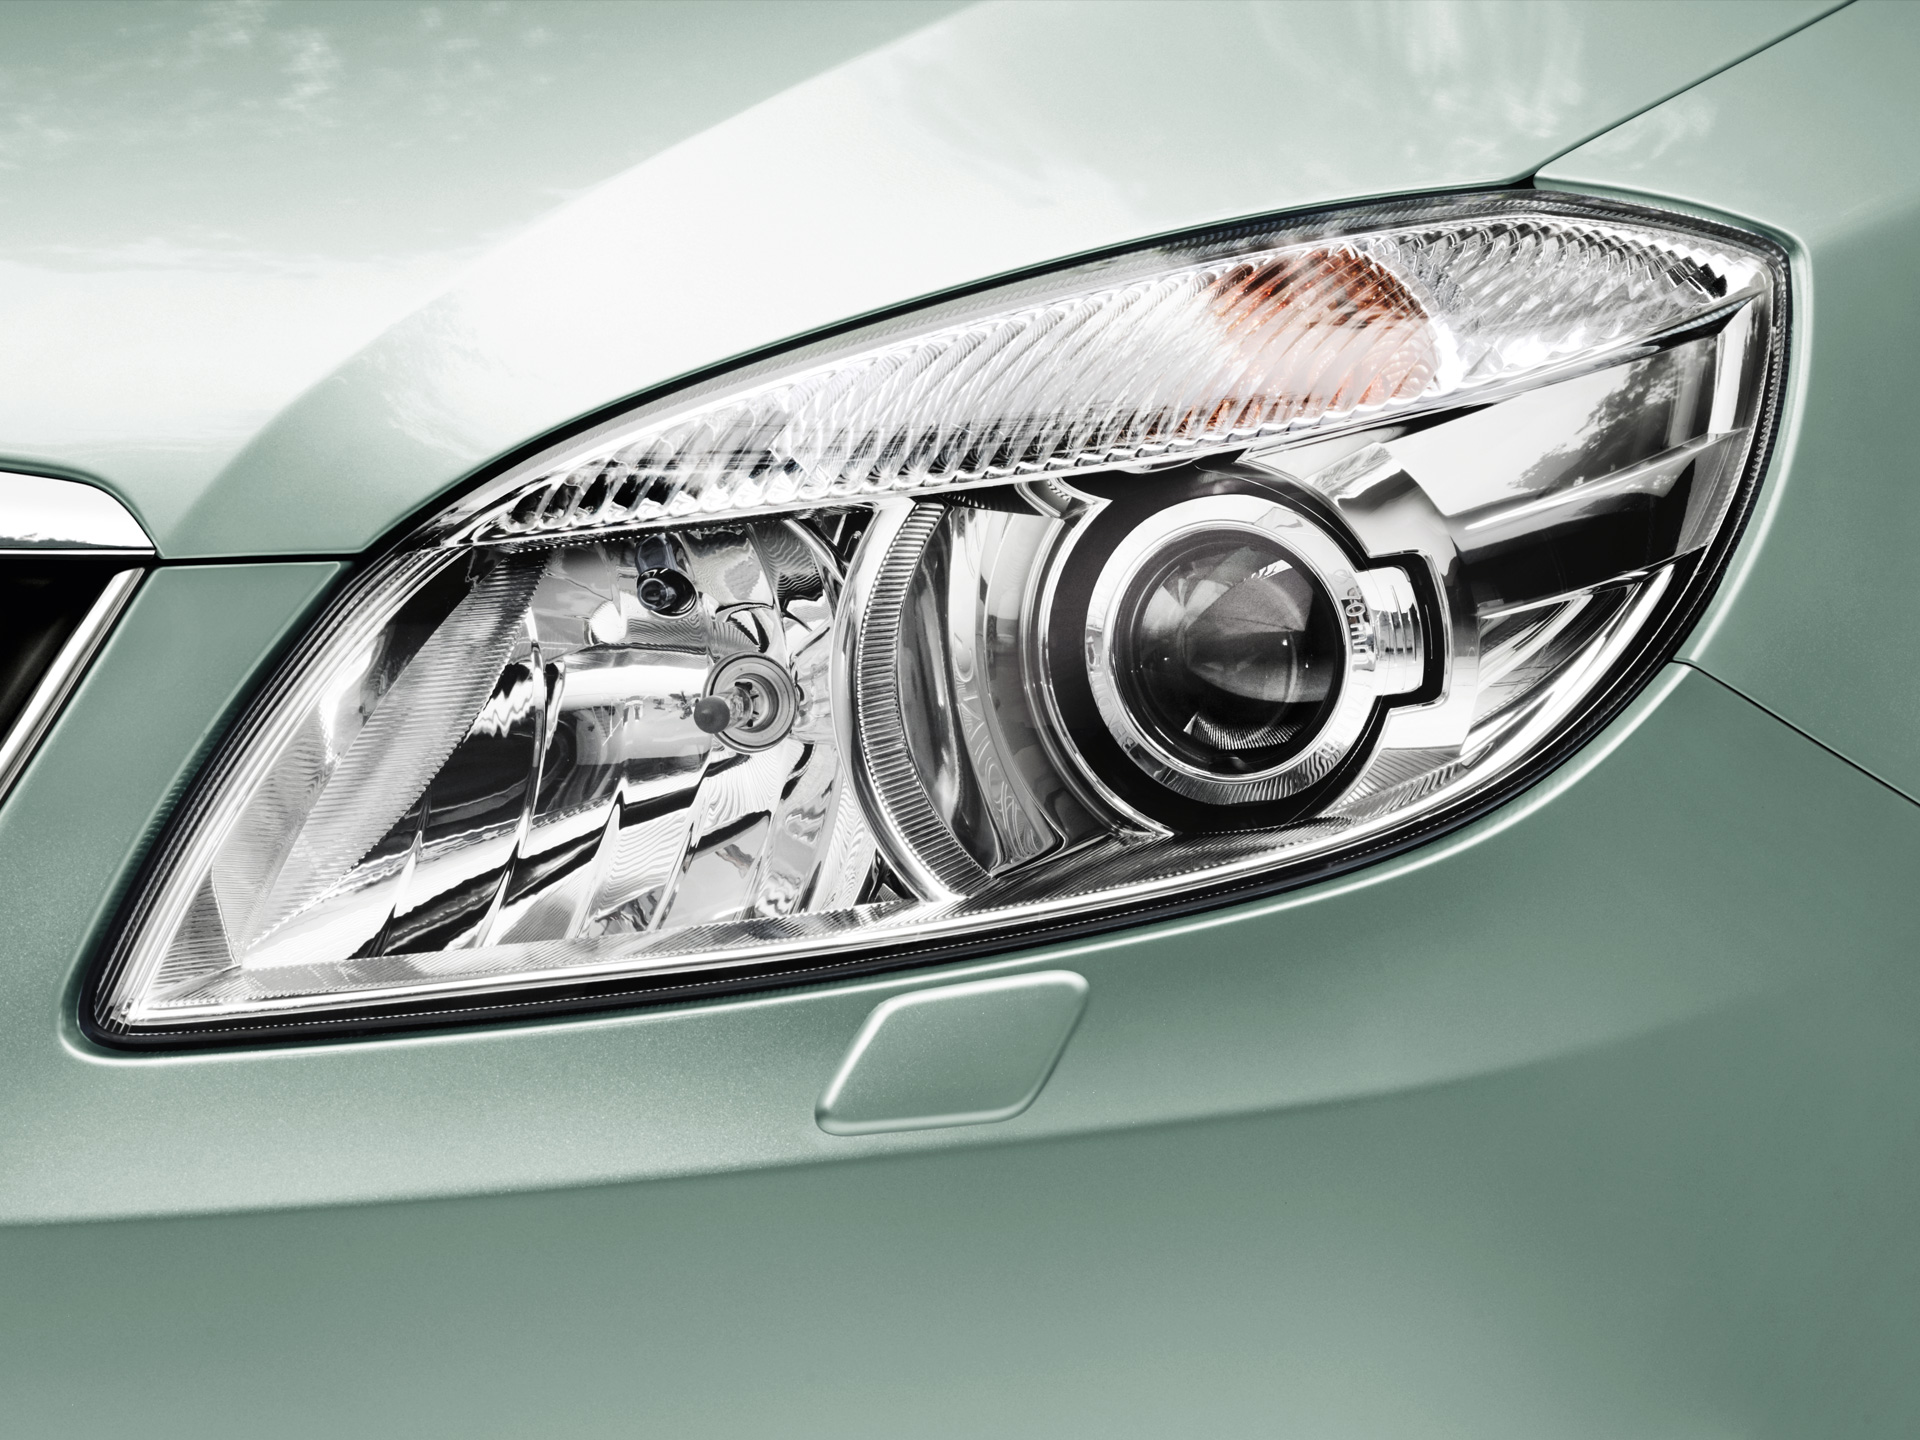 KODA Fabia Main Headlamps with rotary function and Headlamp Washers